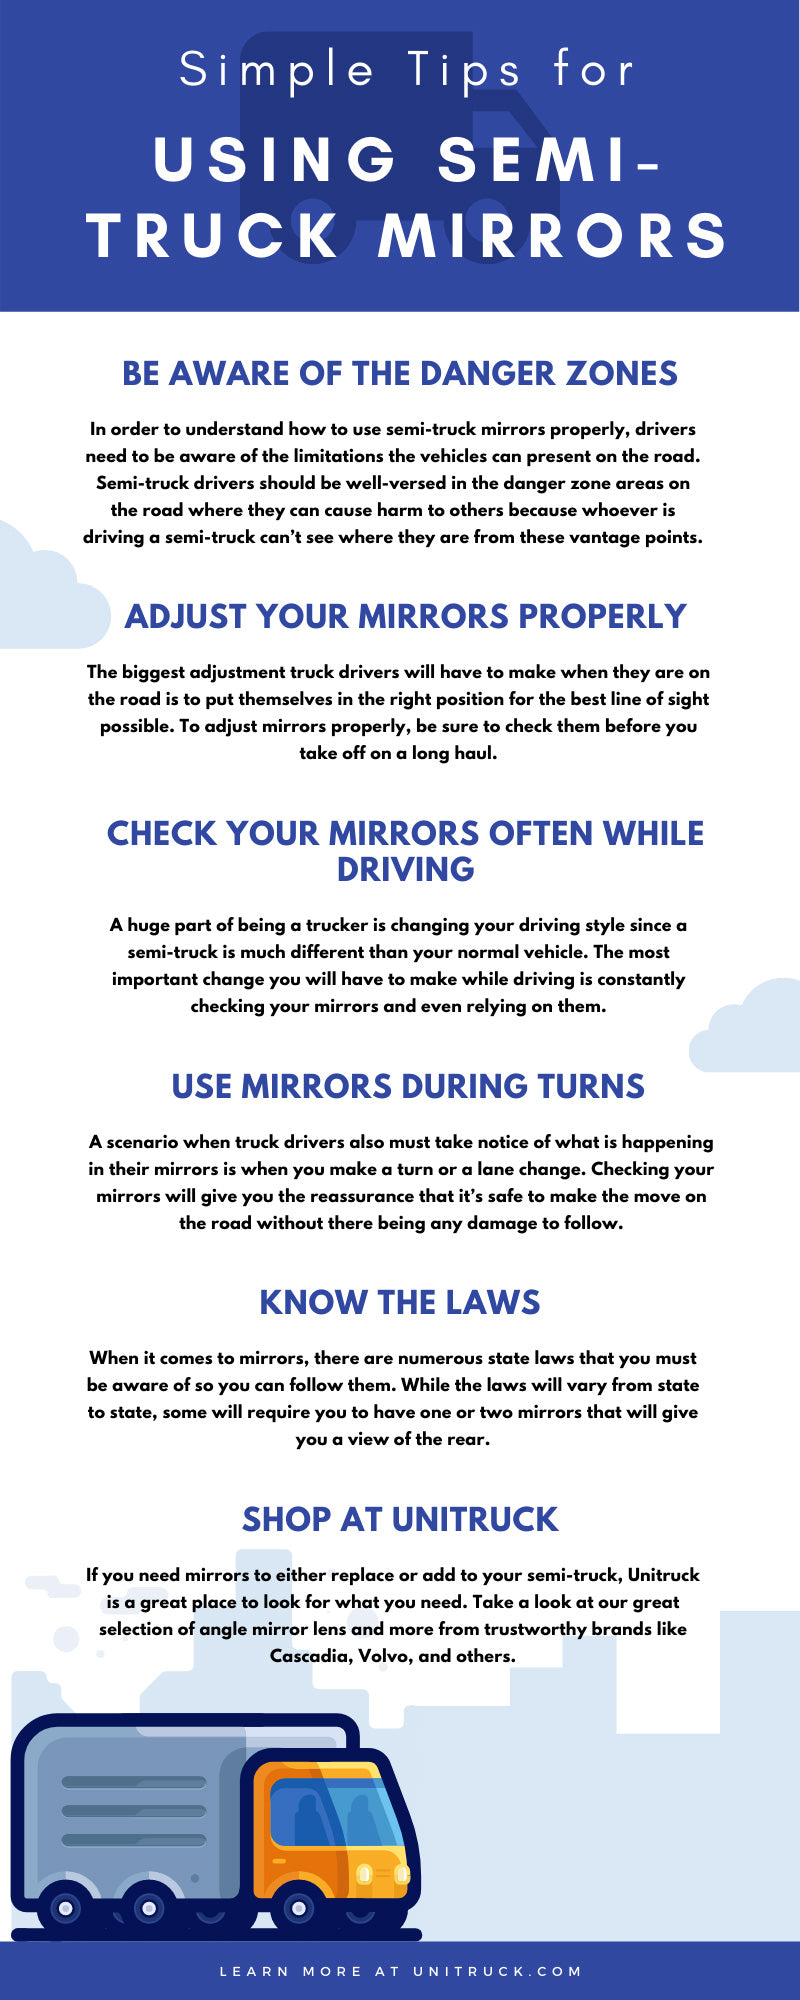 Simple Tips for Using Semi-Truck Mirrors